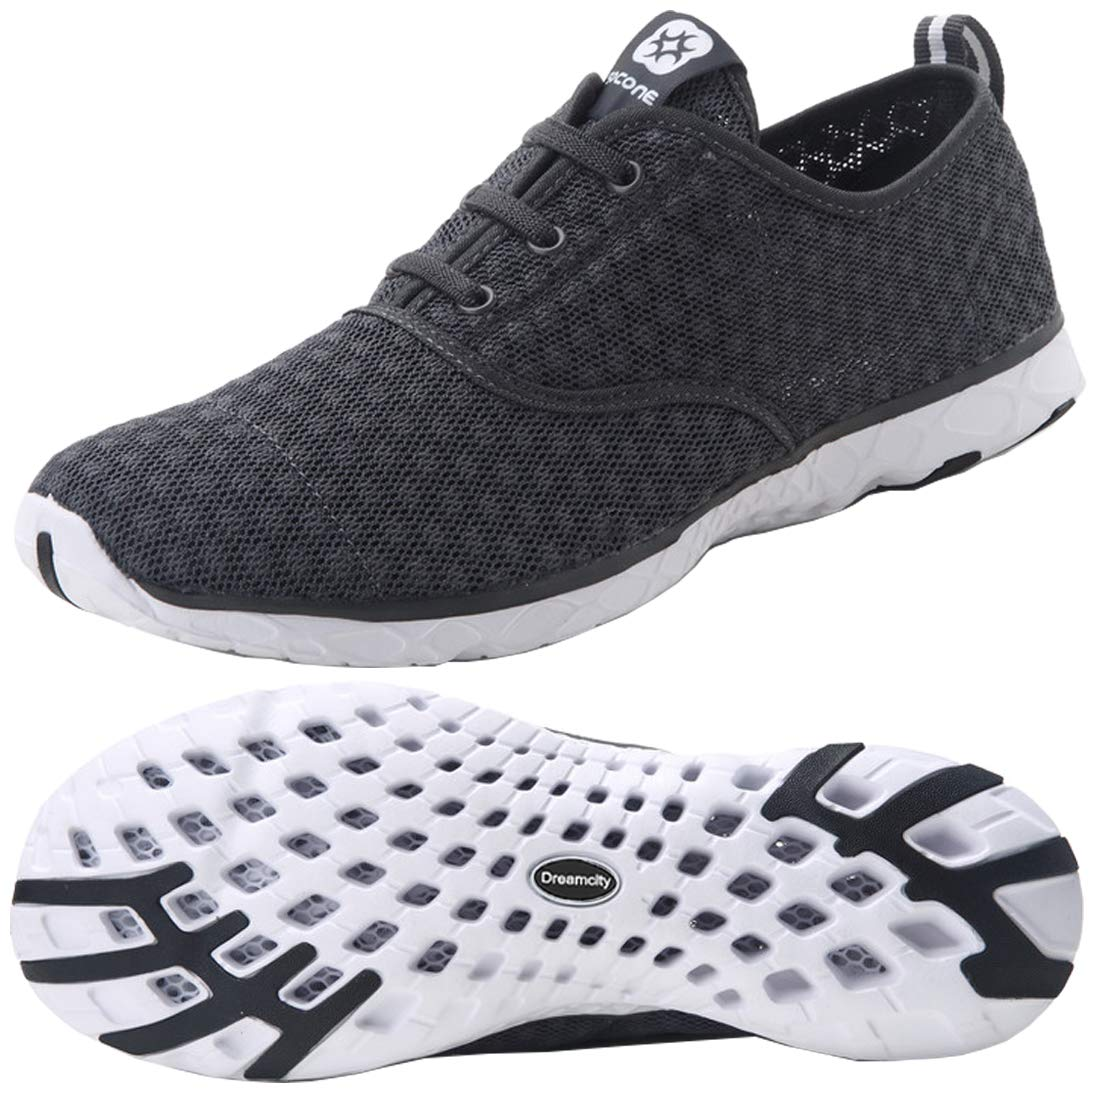 6887f6aa14f Dreamcity Men s Water Shoes Athletic Sport Lightweight Walking Shoes  product image